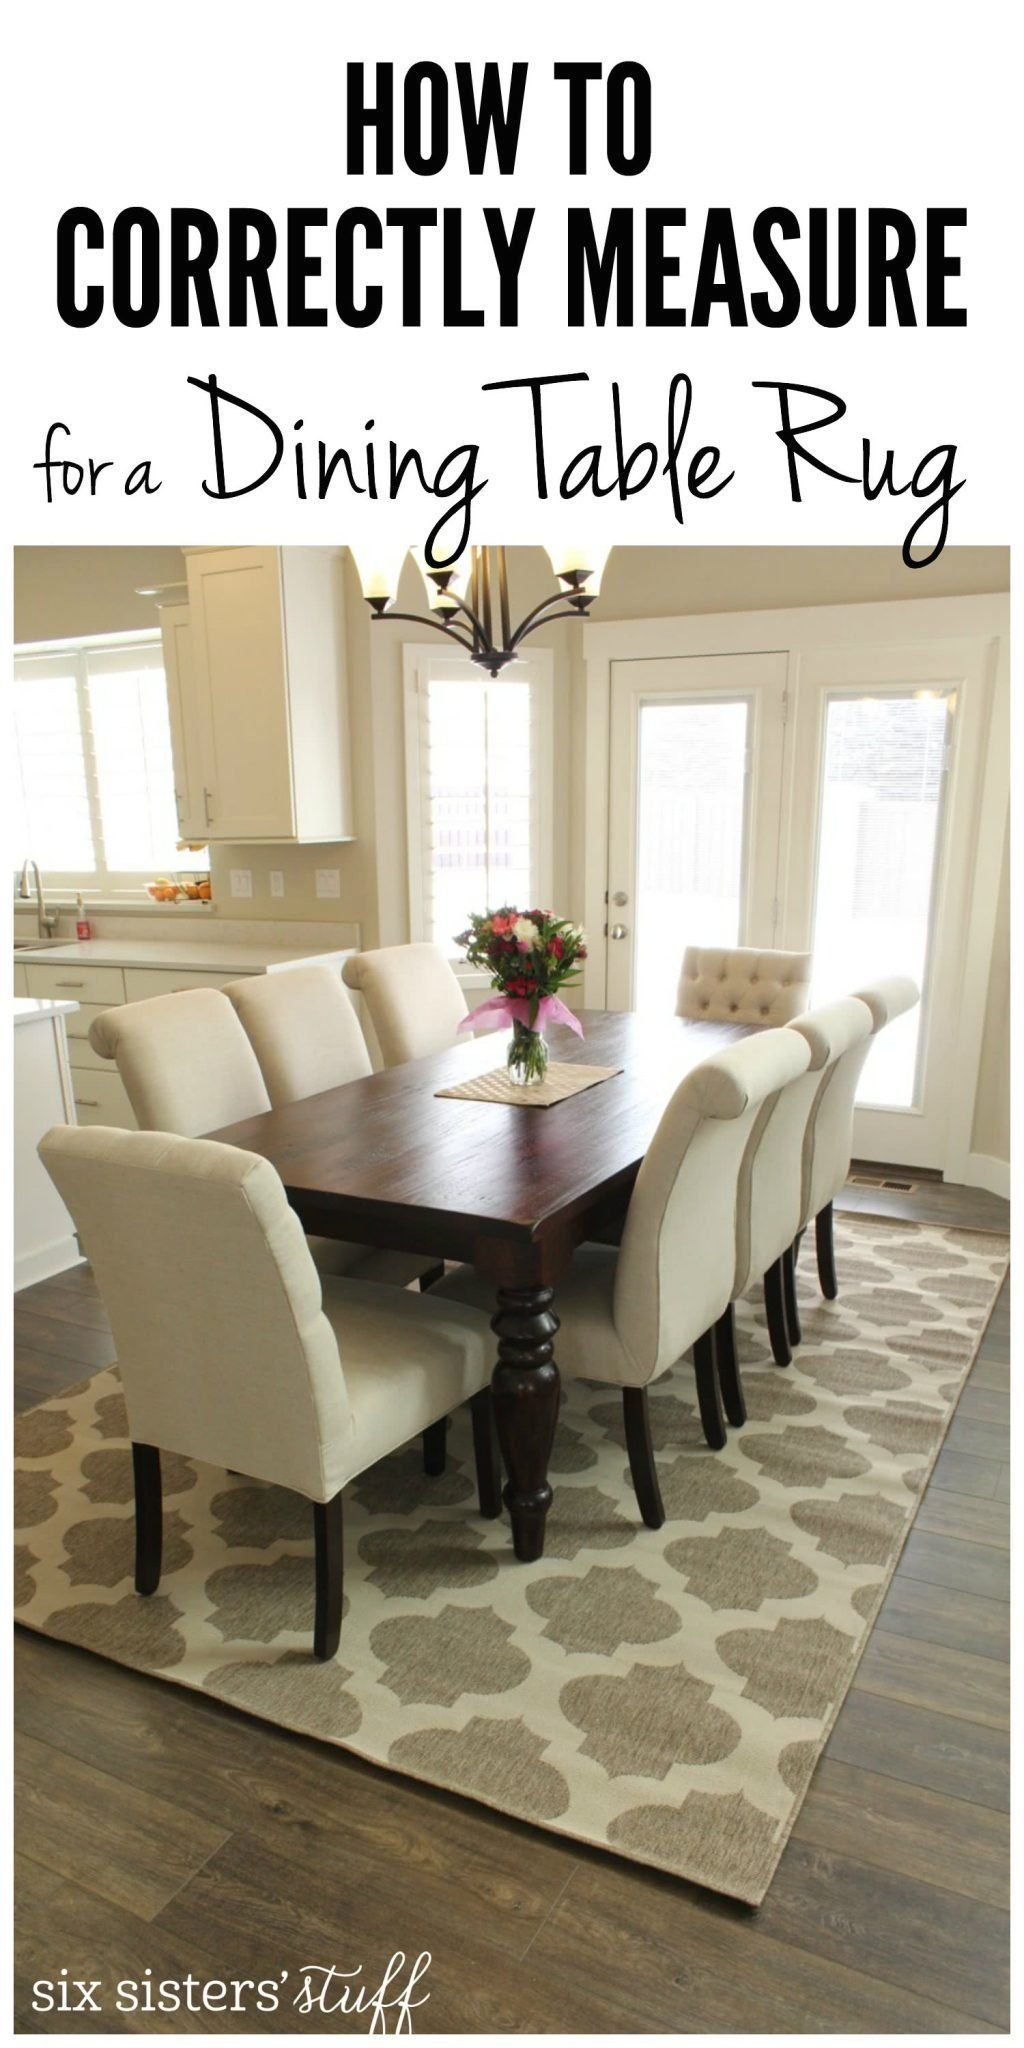 10 Of The Best Kid Friendly Dining Table Rugs 1000 Kitchen Rugs Farmhouse Dining Tables In 2020 Dining Table Rug Rug Under Dining Table Dining Room Rug